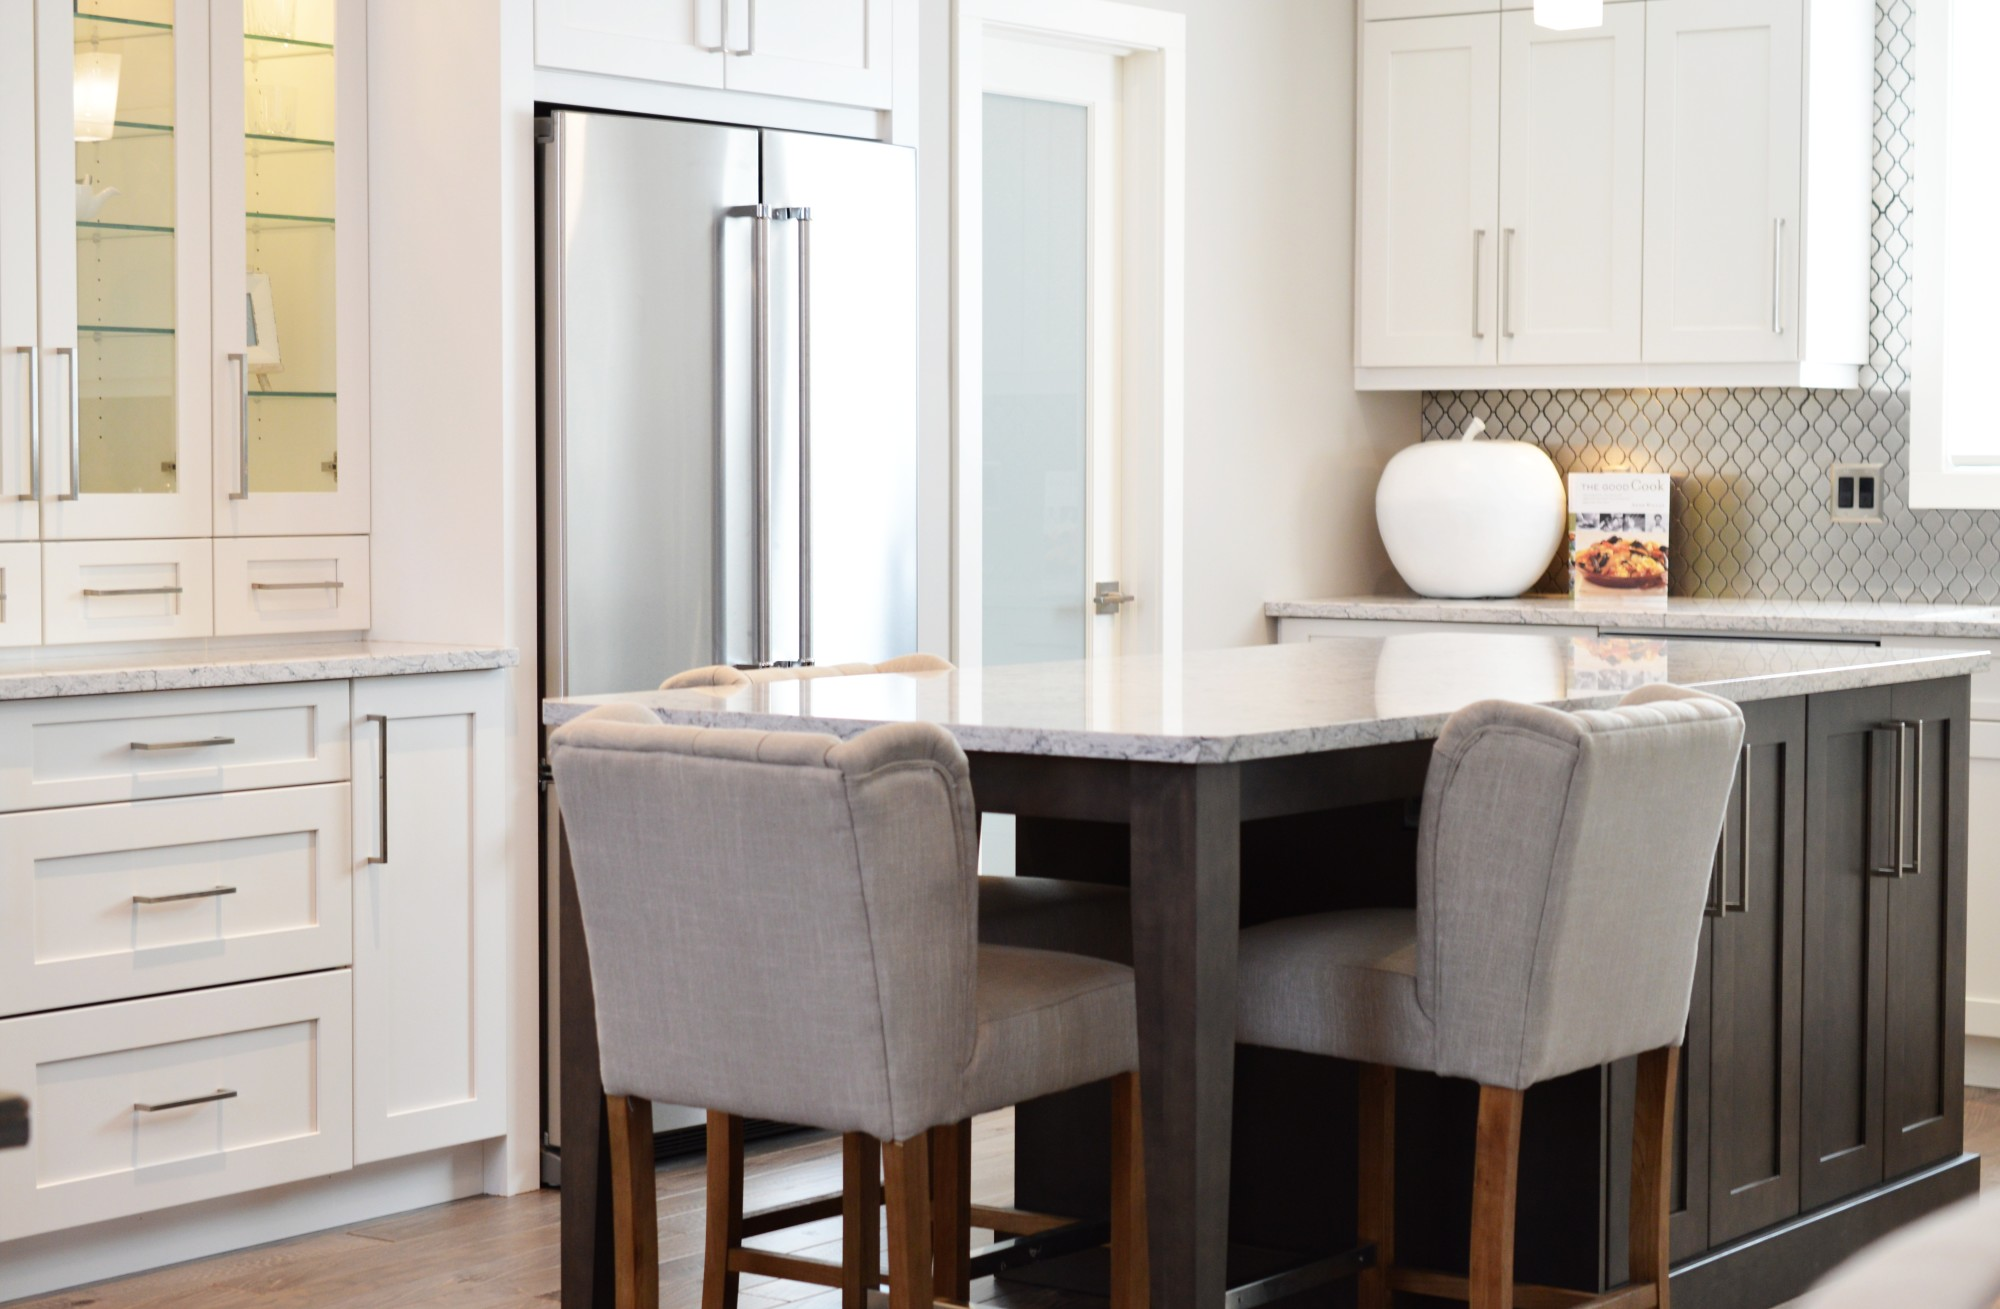 5 Modern Kitchen Designs Materials Styles And Colors For 2020